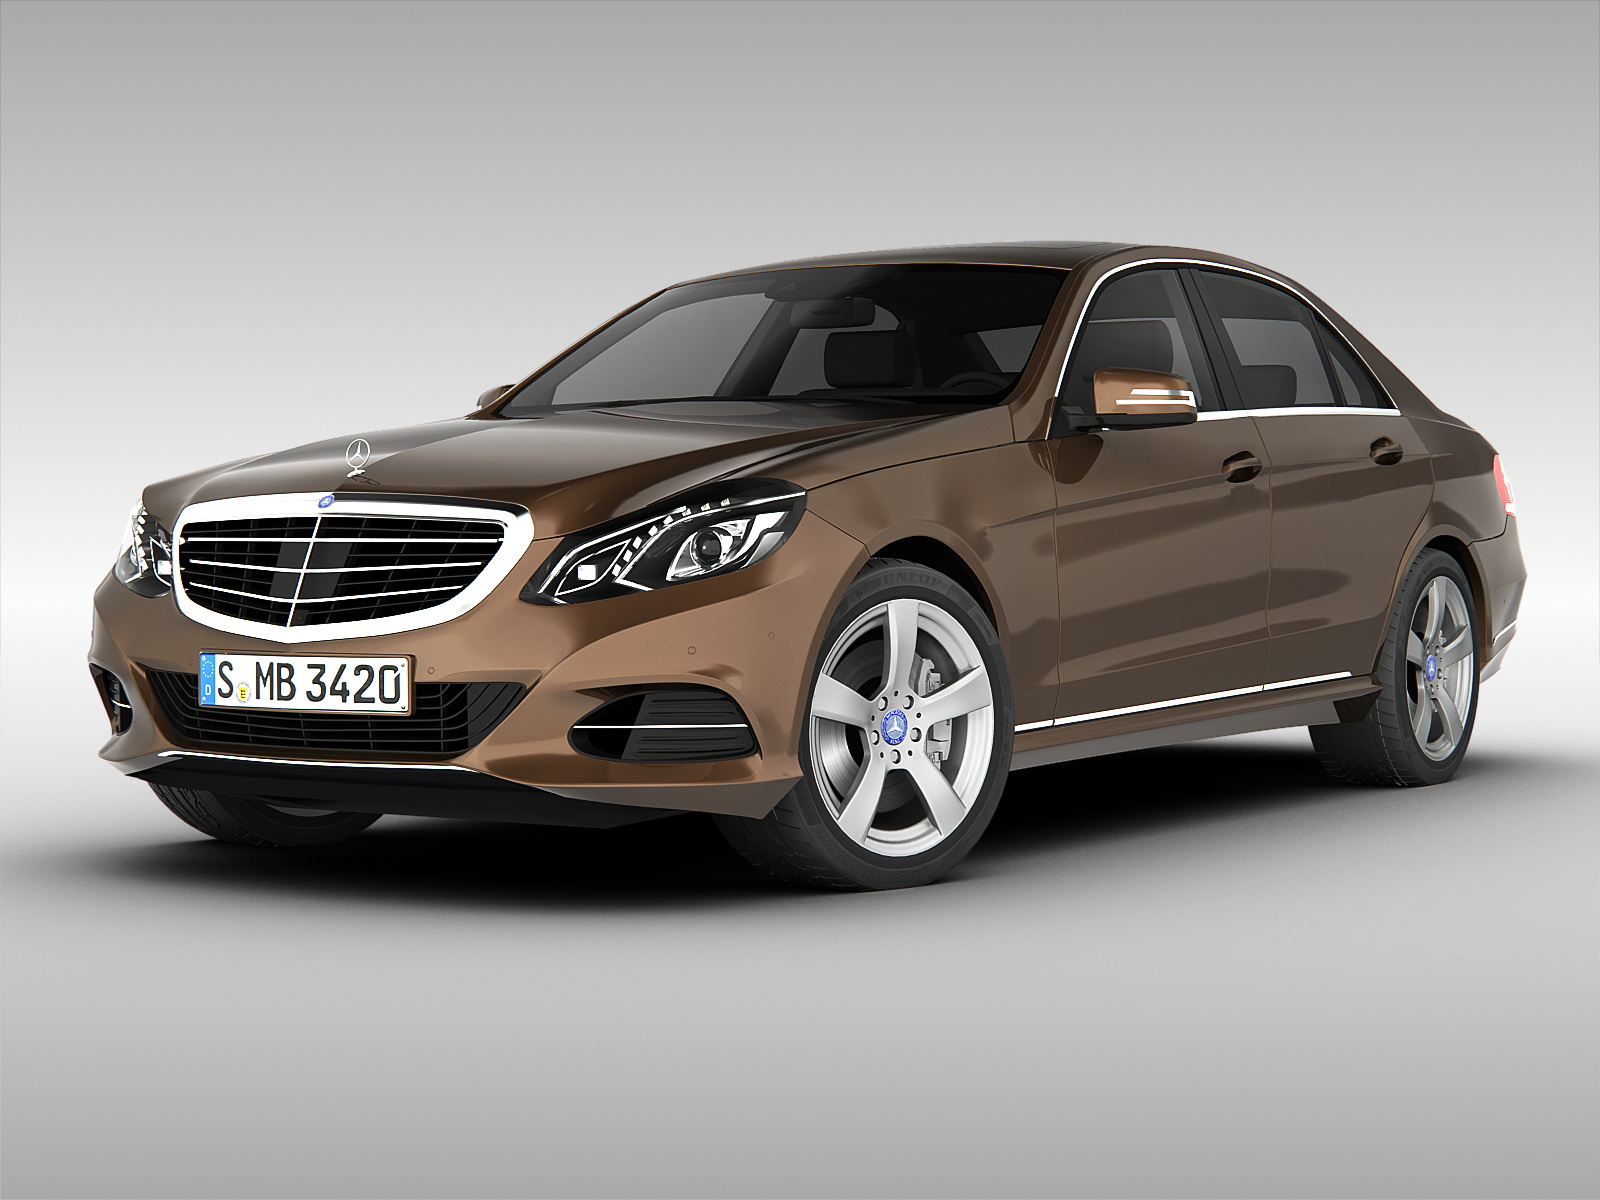 Cool car wallpapers mercedes benz e class 2014 for Mercedes benz class e